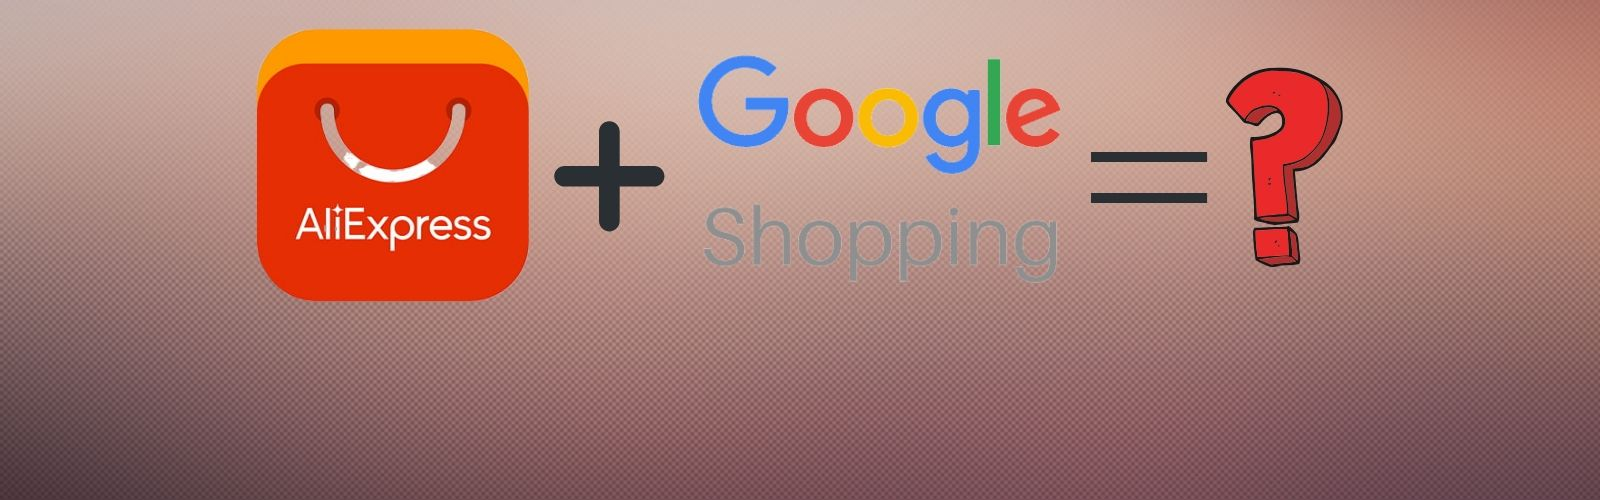 Can You Profitably Dropship with Google Shopping?